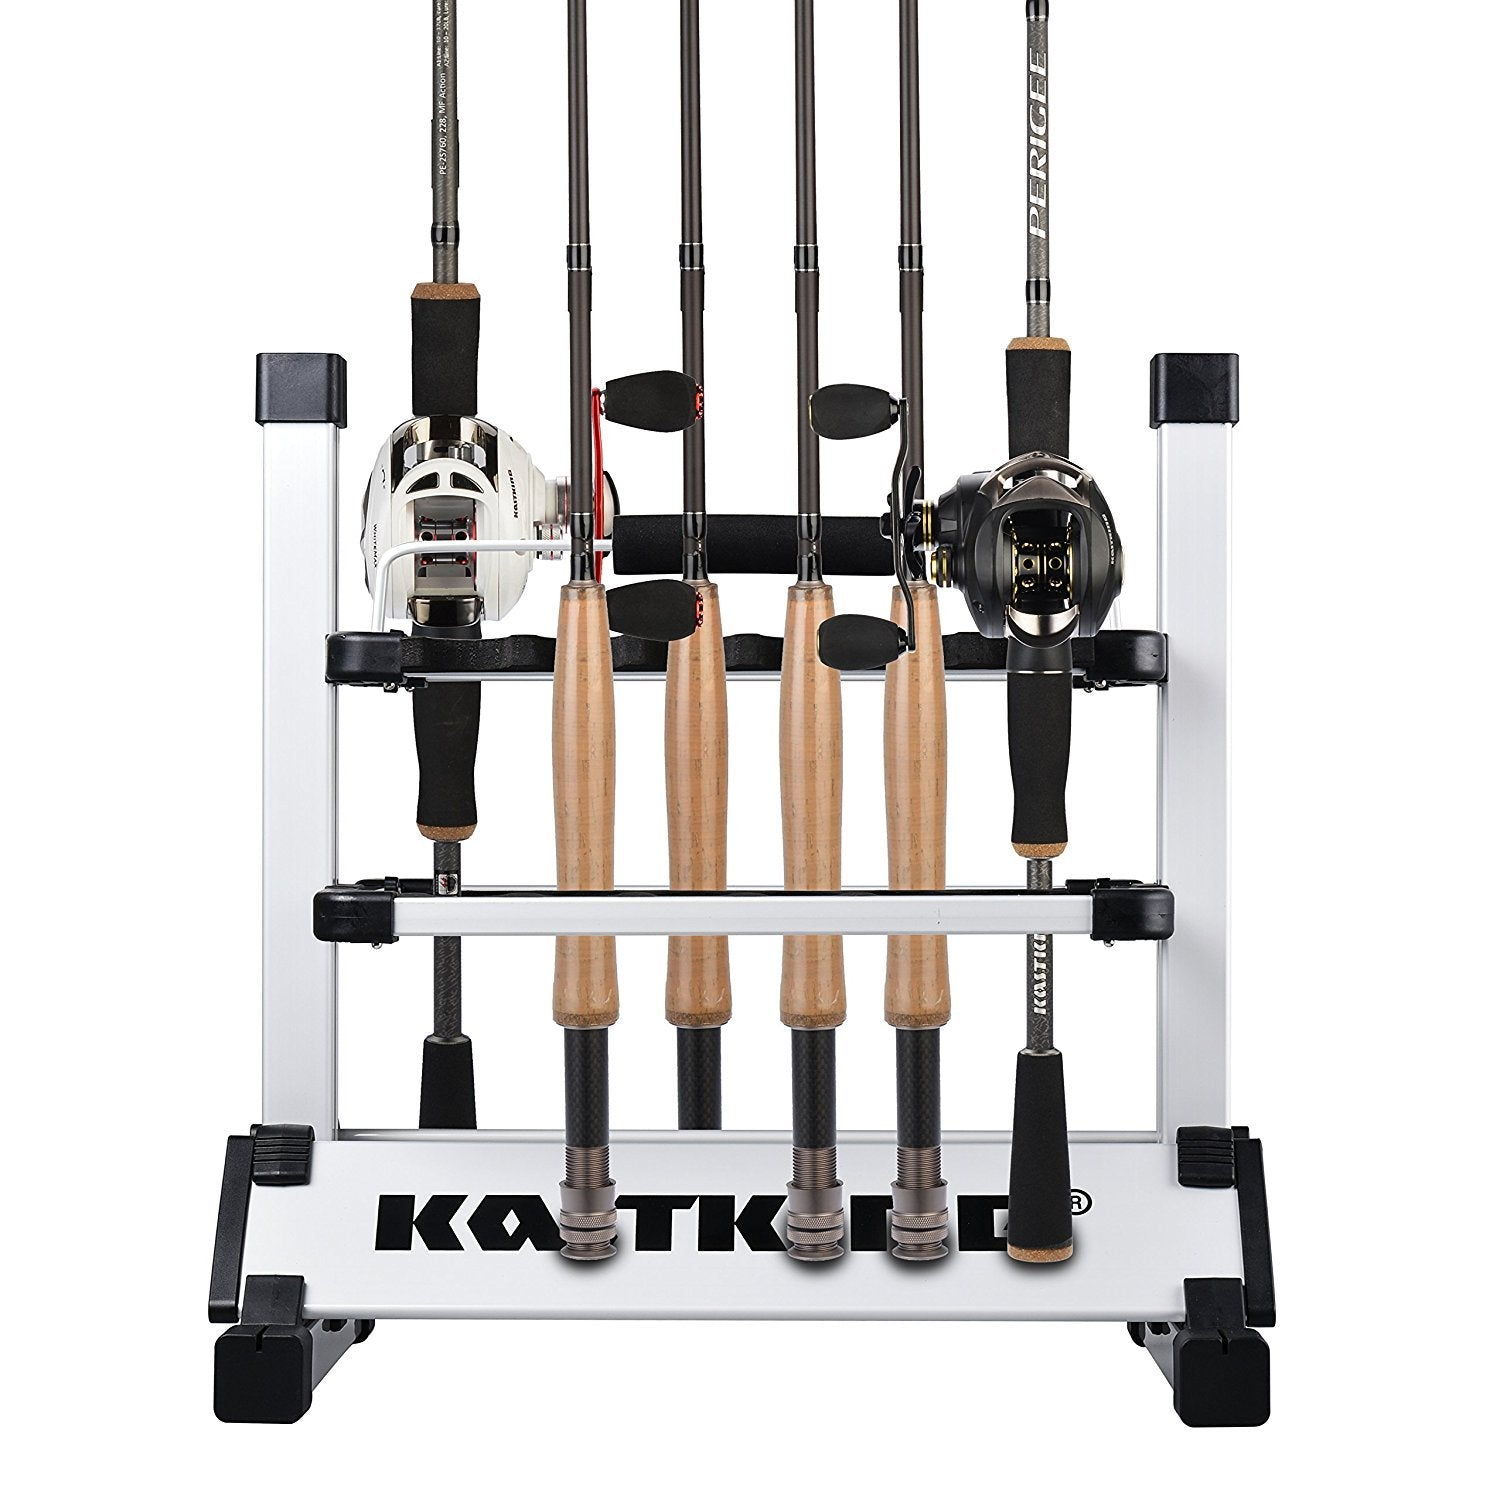 KastKing Rack 'em Up Portable Aluminum Fishing Rod Holder - 12 Rods Rack SilverBlack - Ctfitnesswear